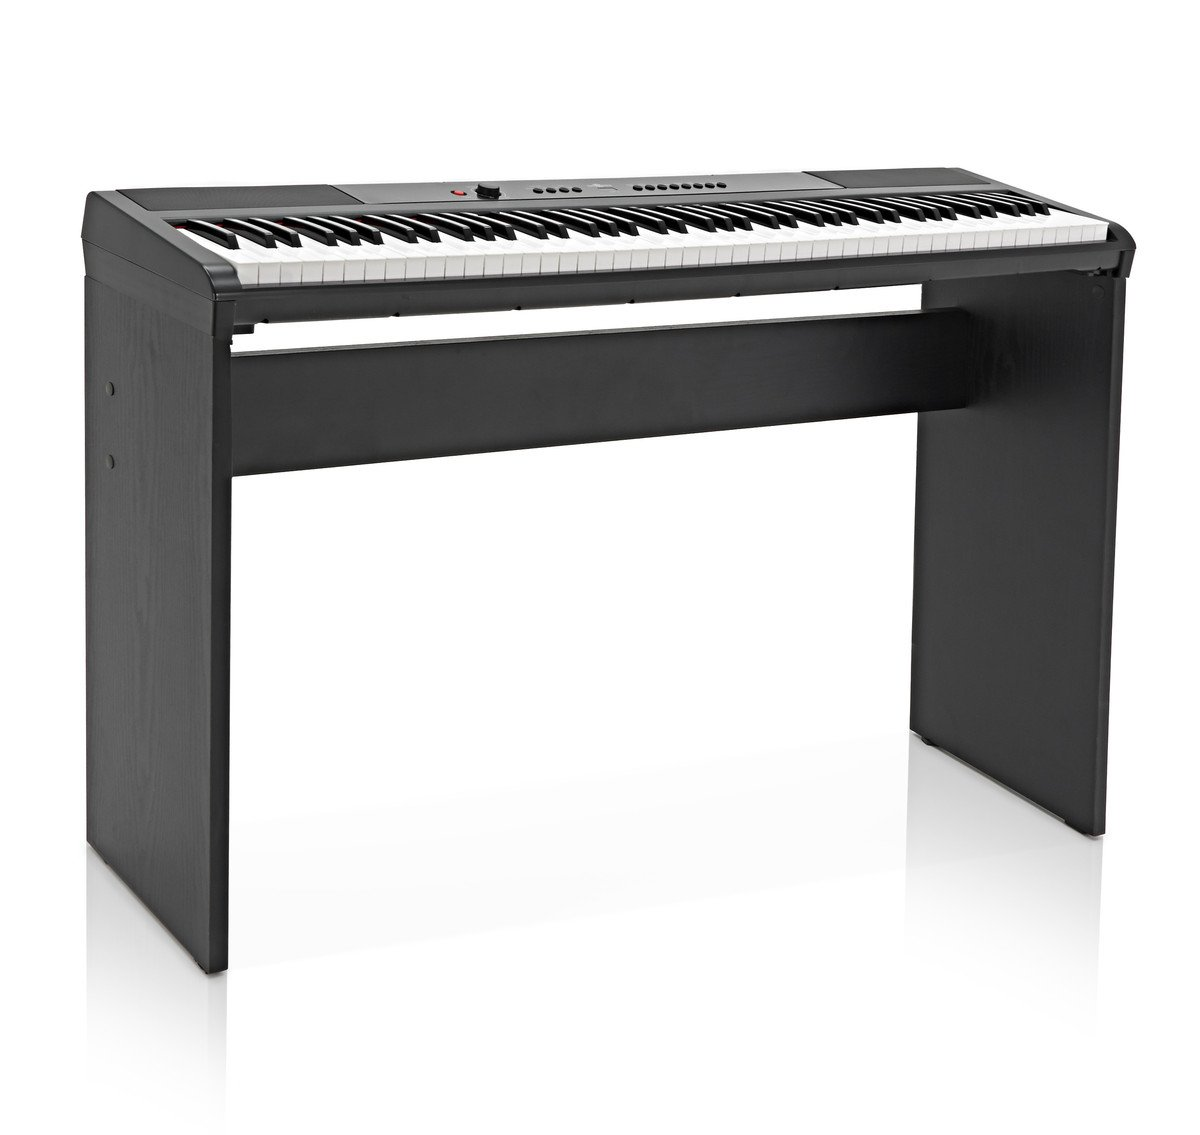 SDP-2 Stage Piano Stand by Gear4music